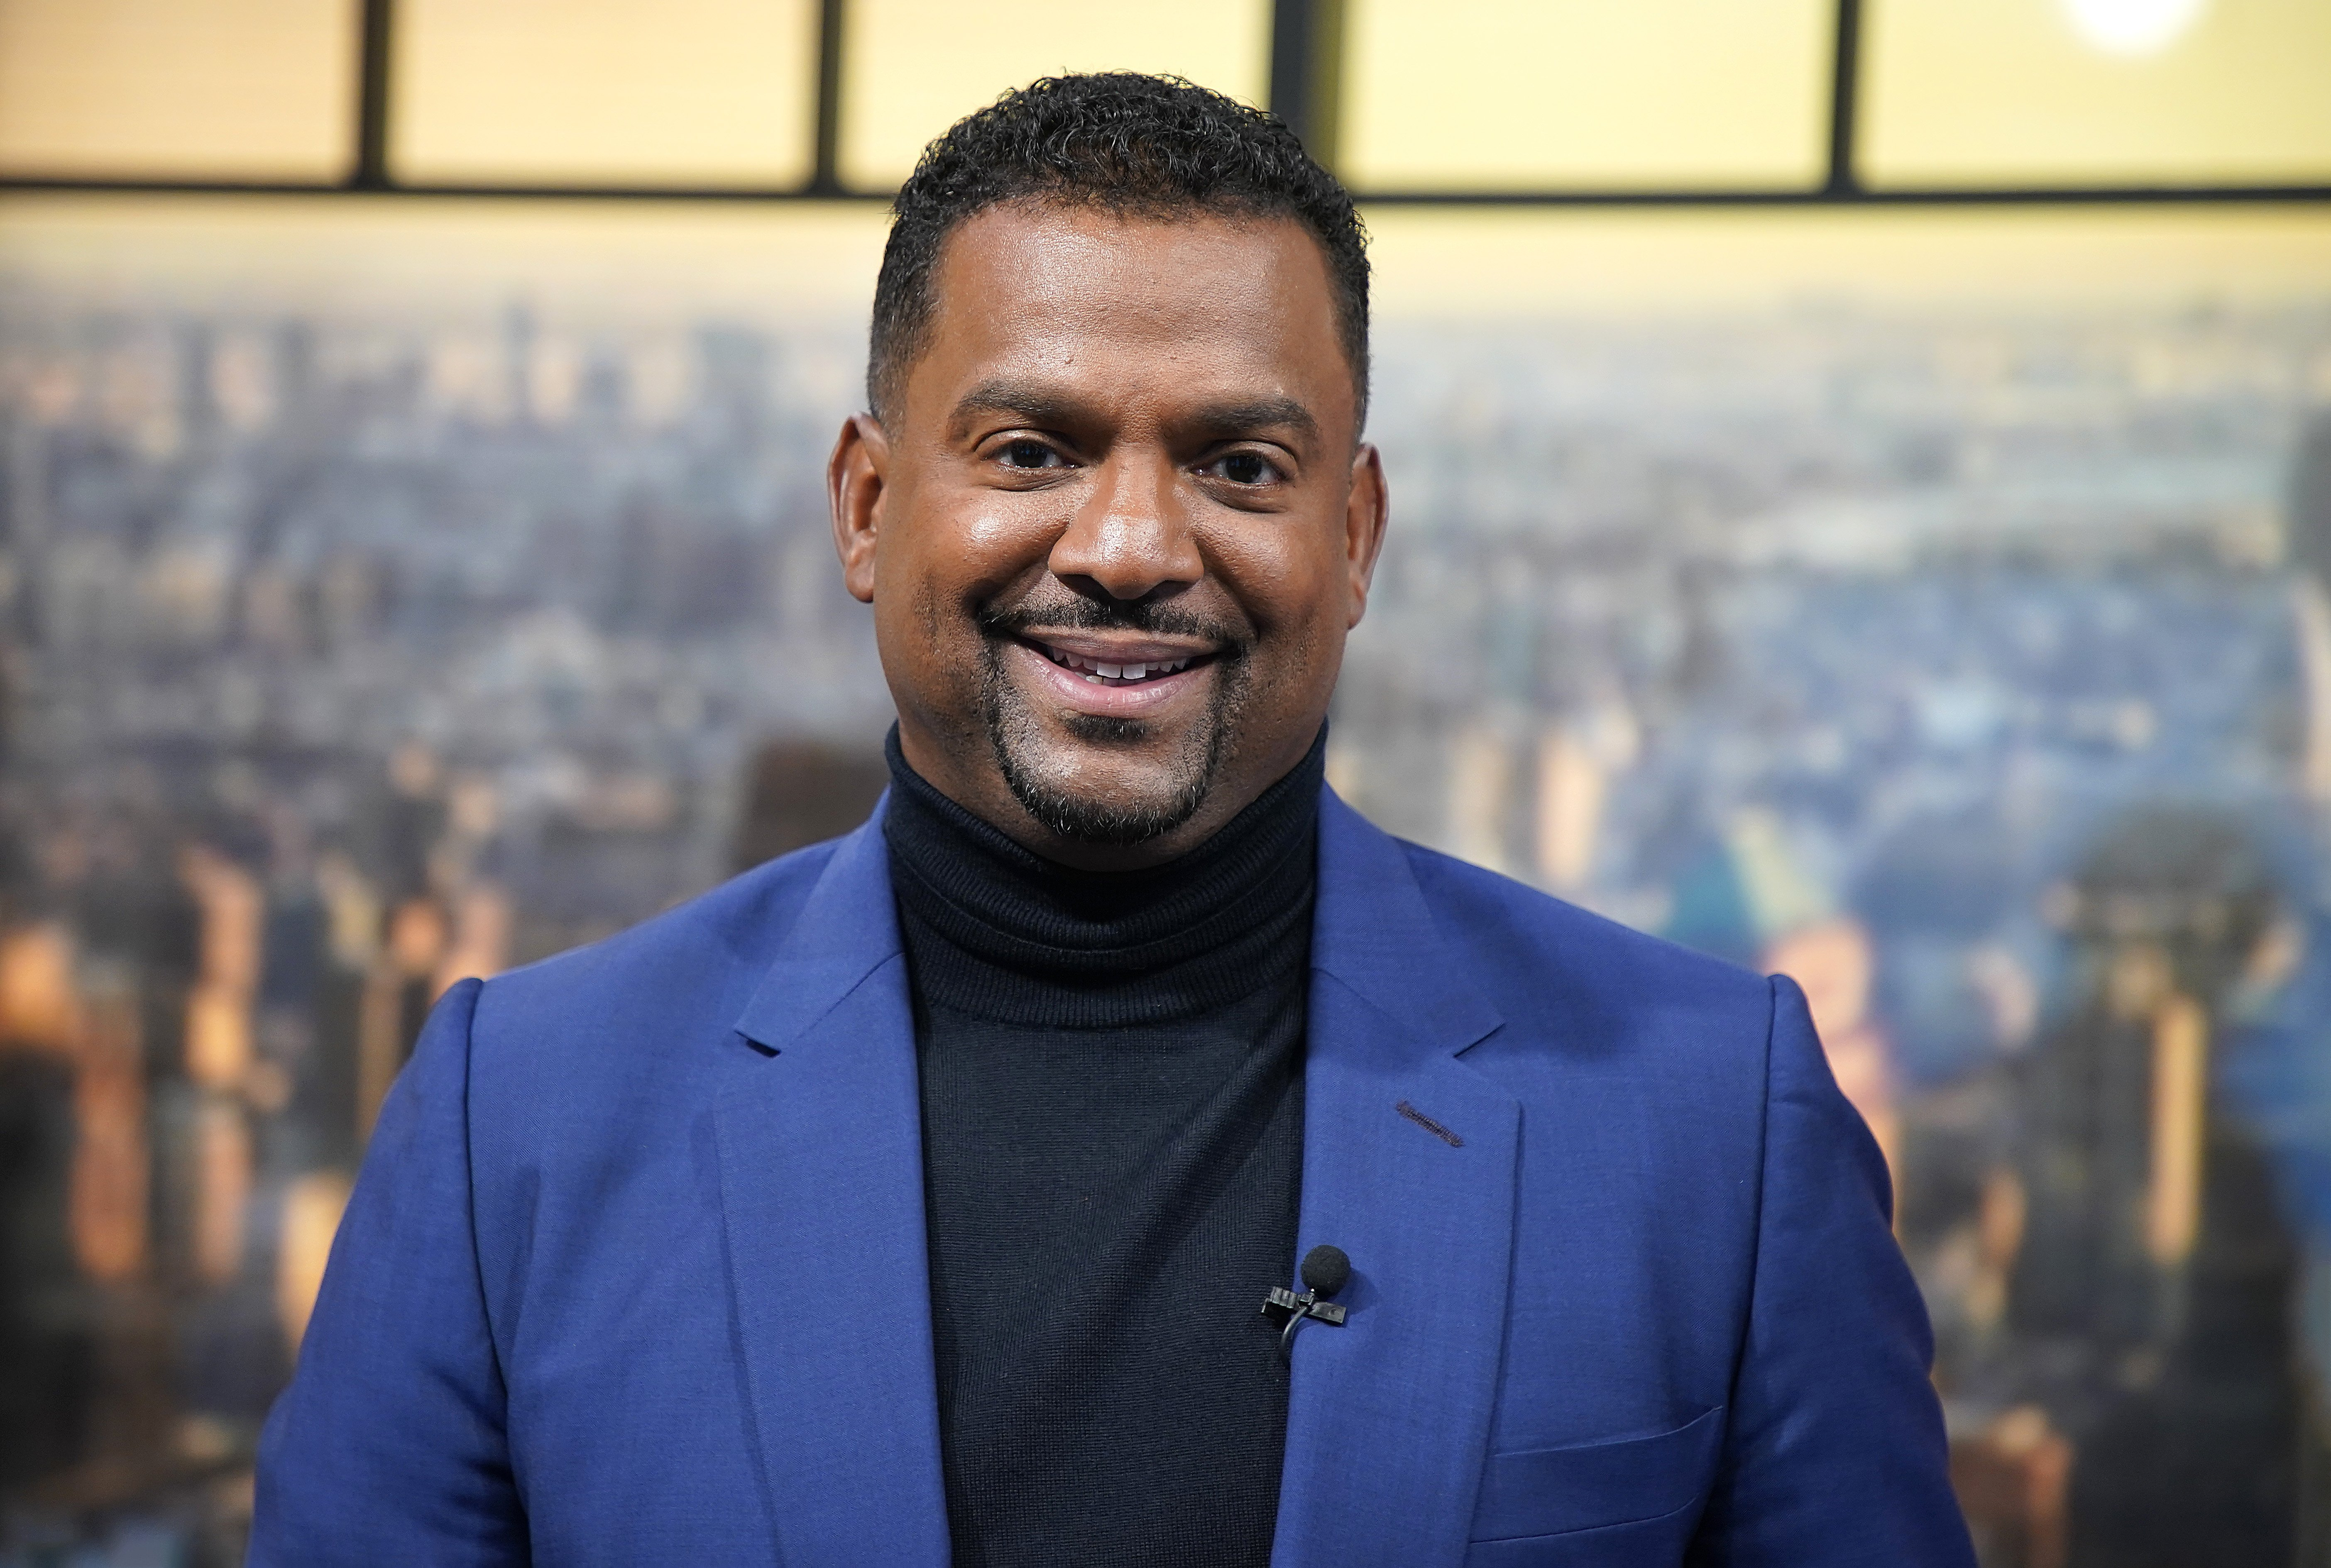 Alfonso Ribeiro visits People Now Studios in New York City on November 14, 2019. | Photo: Getty Images